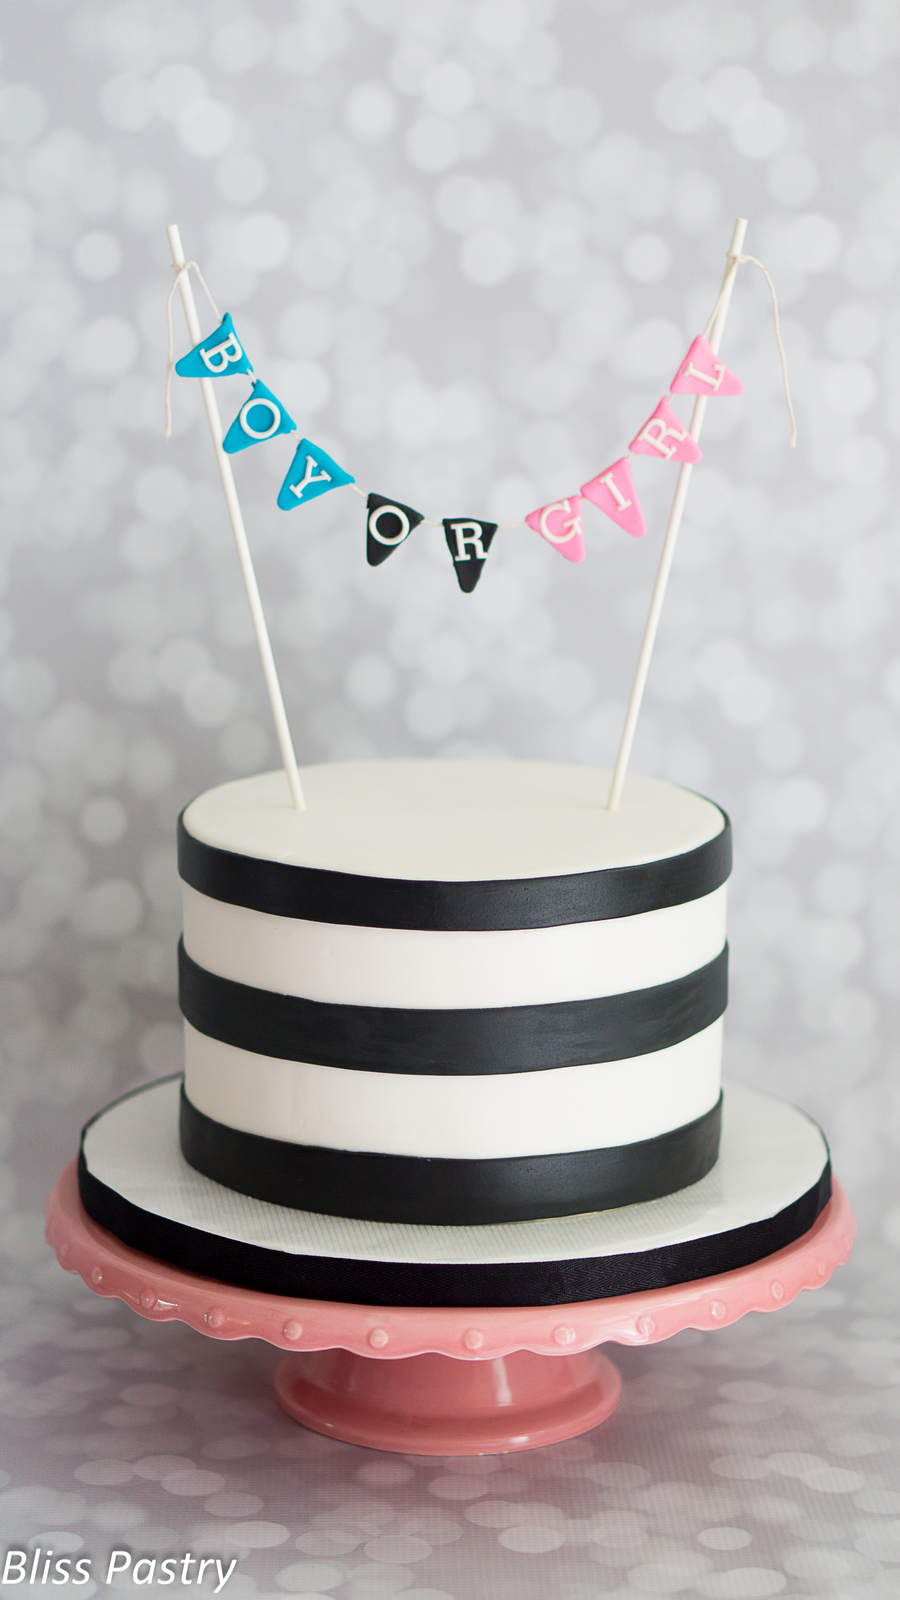 Diy black and white gender reveal cake